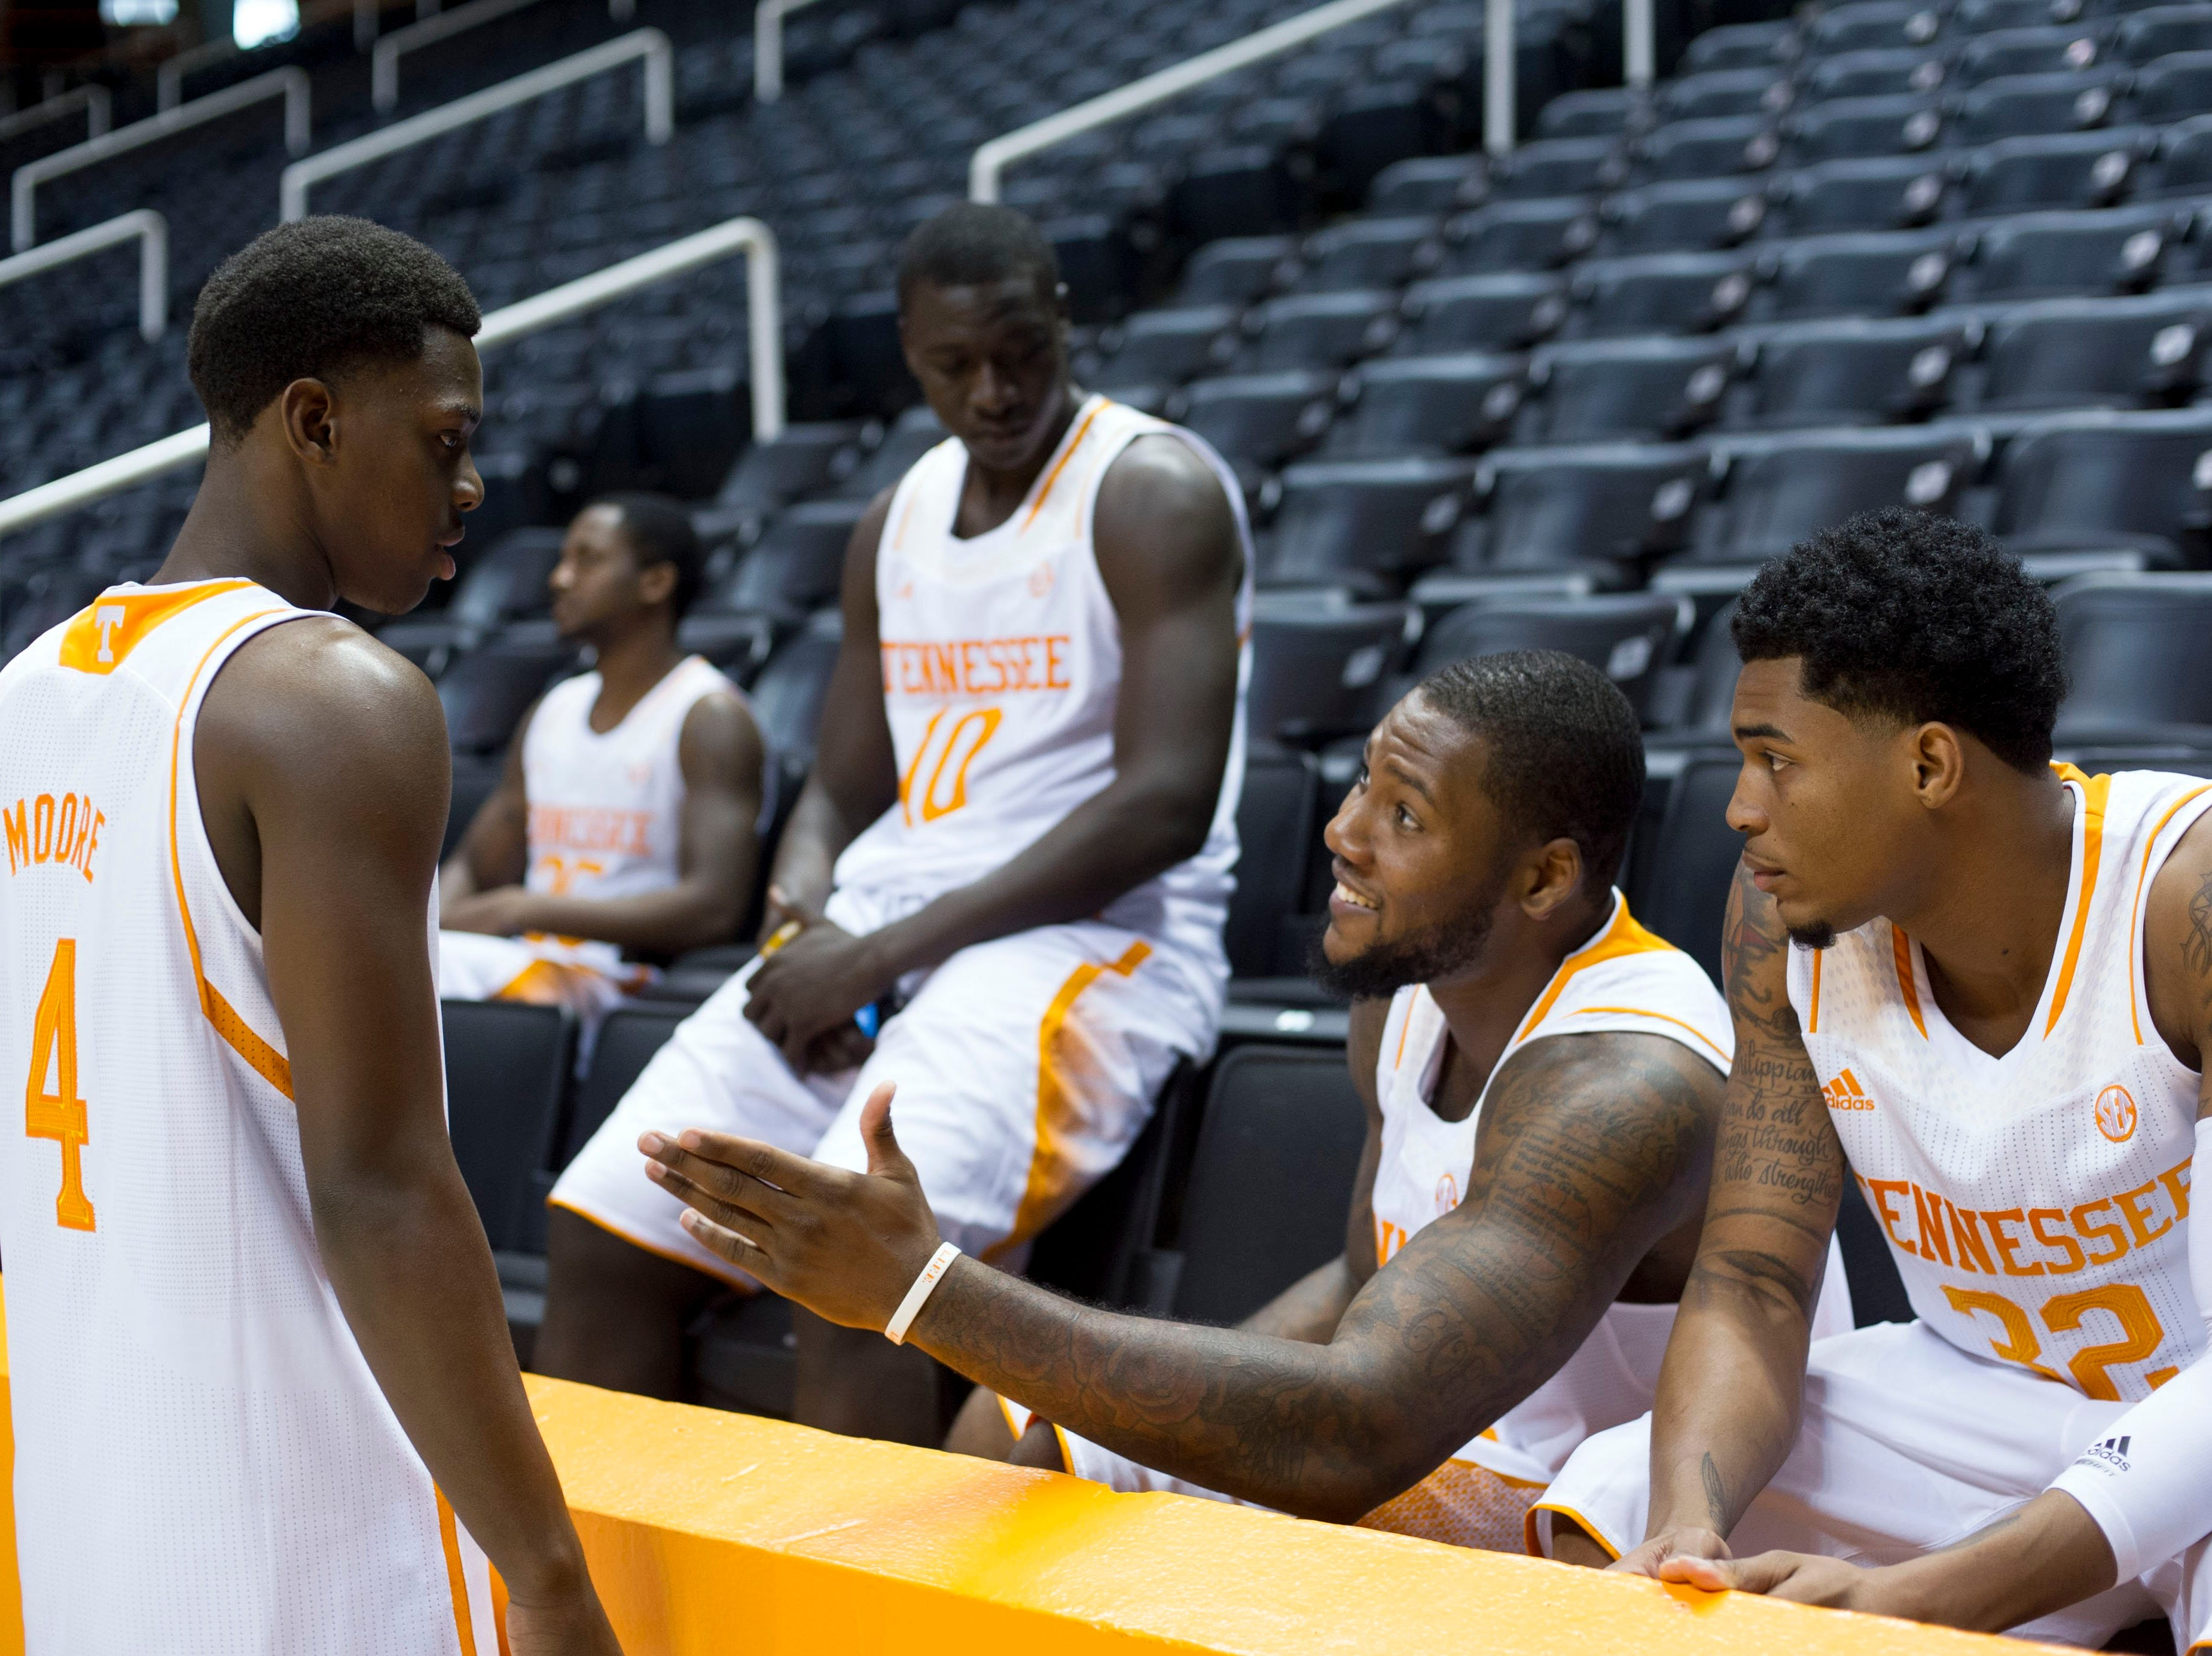 """Tennessee players, from left, Armani Moore, Rawane """"Pops"""" Ndiave, Jeronne Maymon, and D'Montre Edwards at Tennessee Basketball Media Day on Monday, October 7, 2013."""